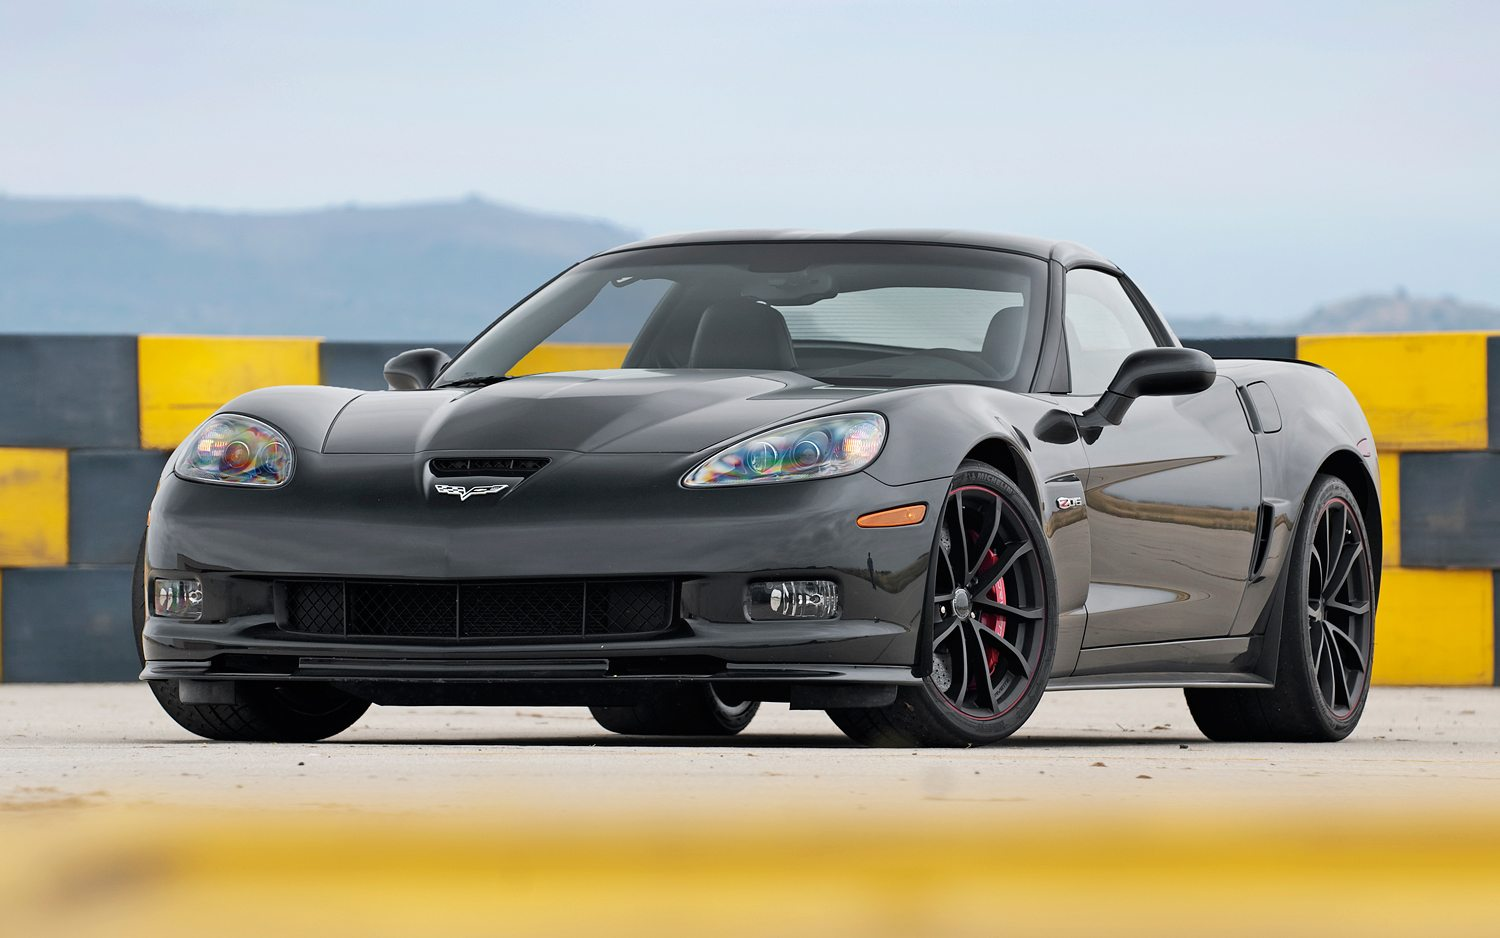 Chevrolet Corvette Z06/ZR1 (C6)